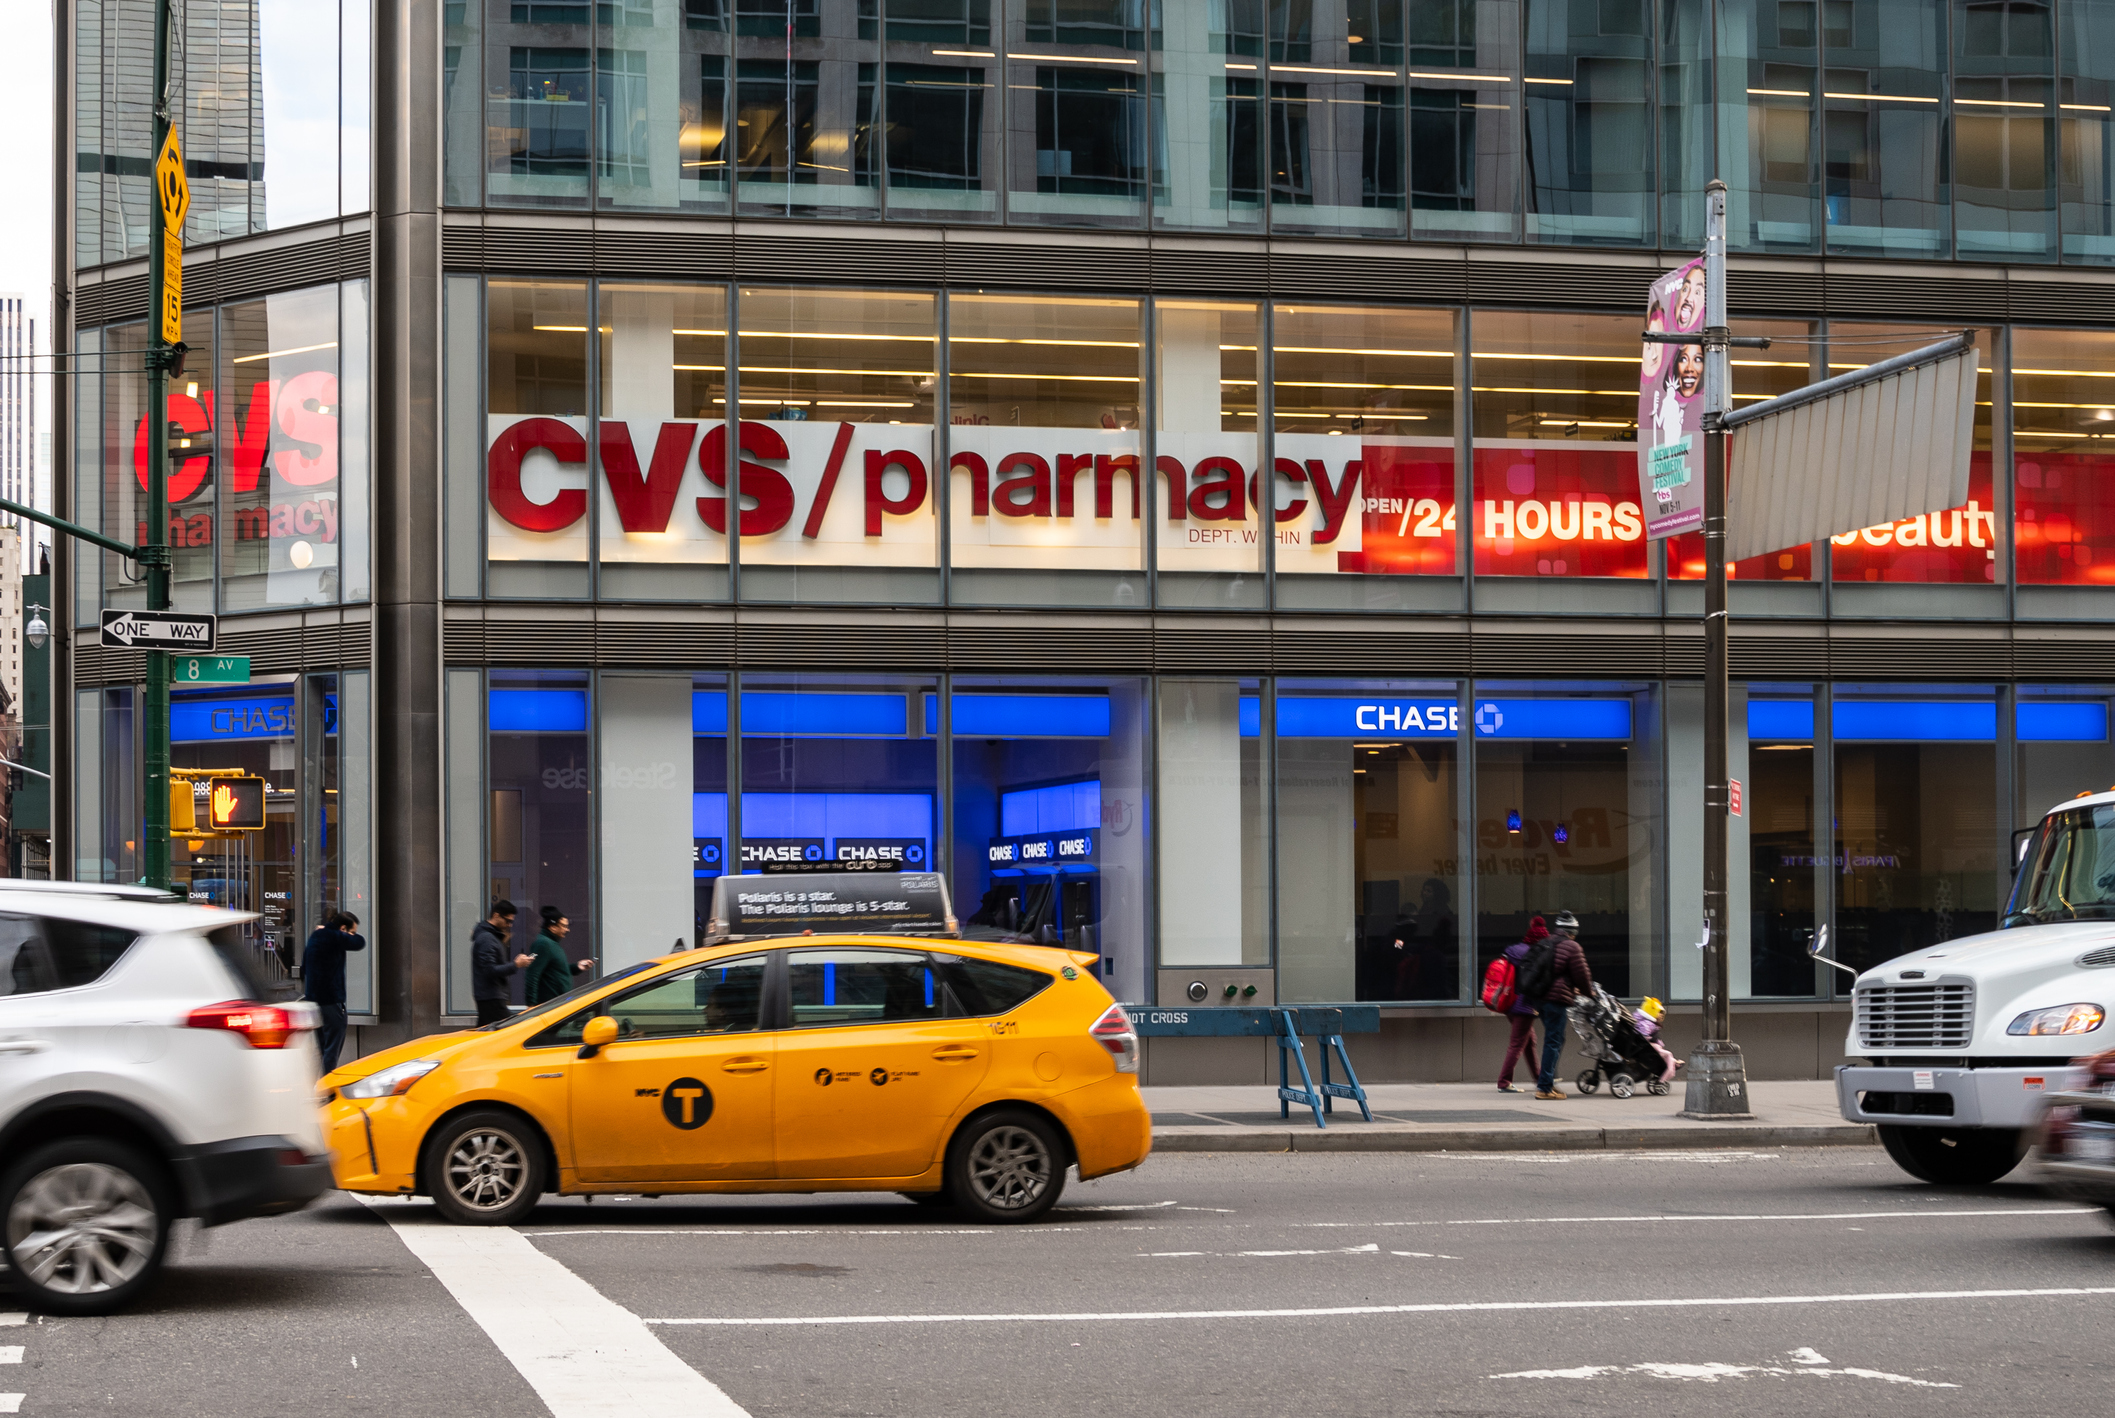 The entrance to CVS pharmacy and Chase bank on 8th Avenue